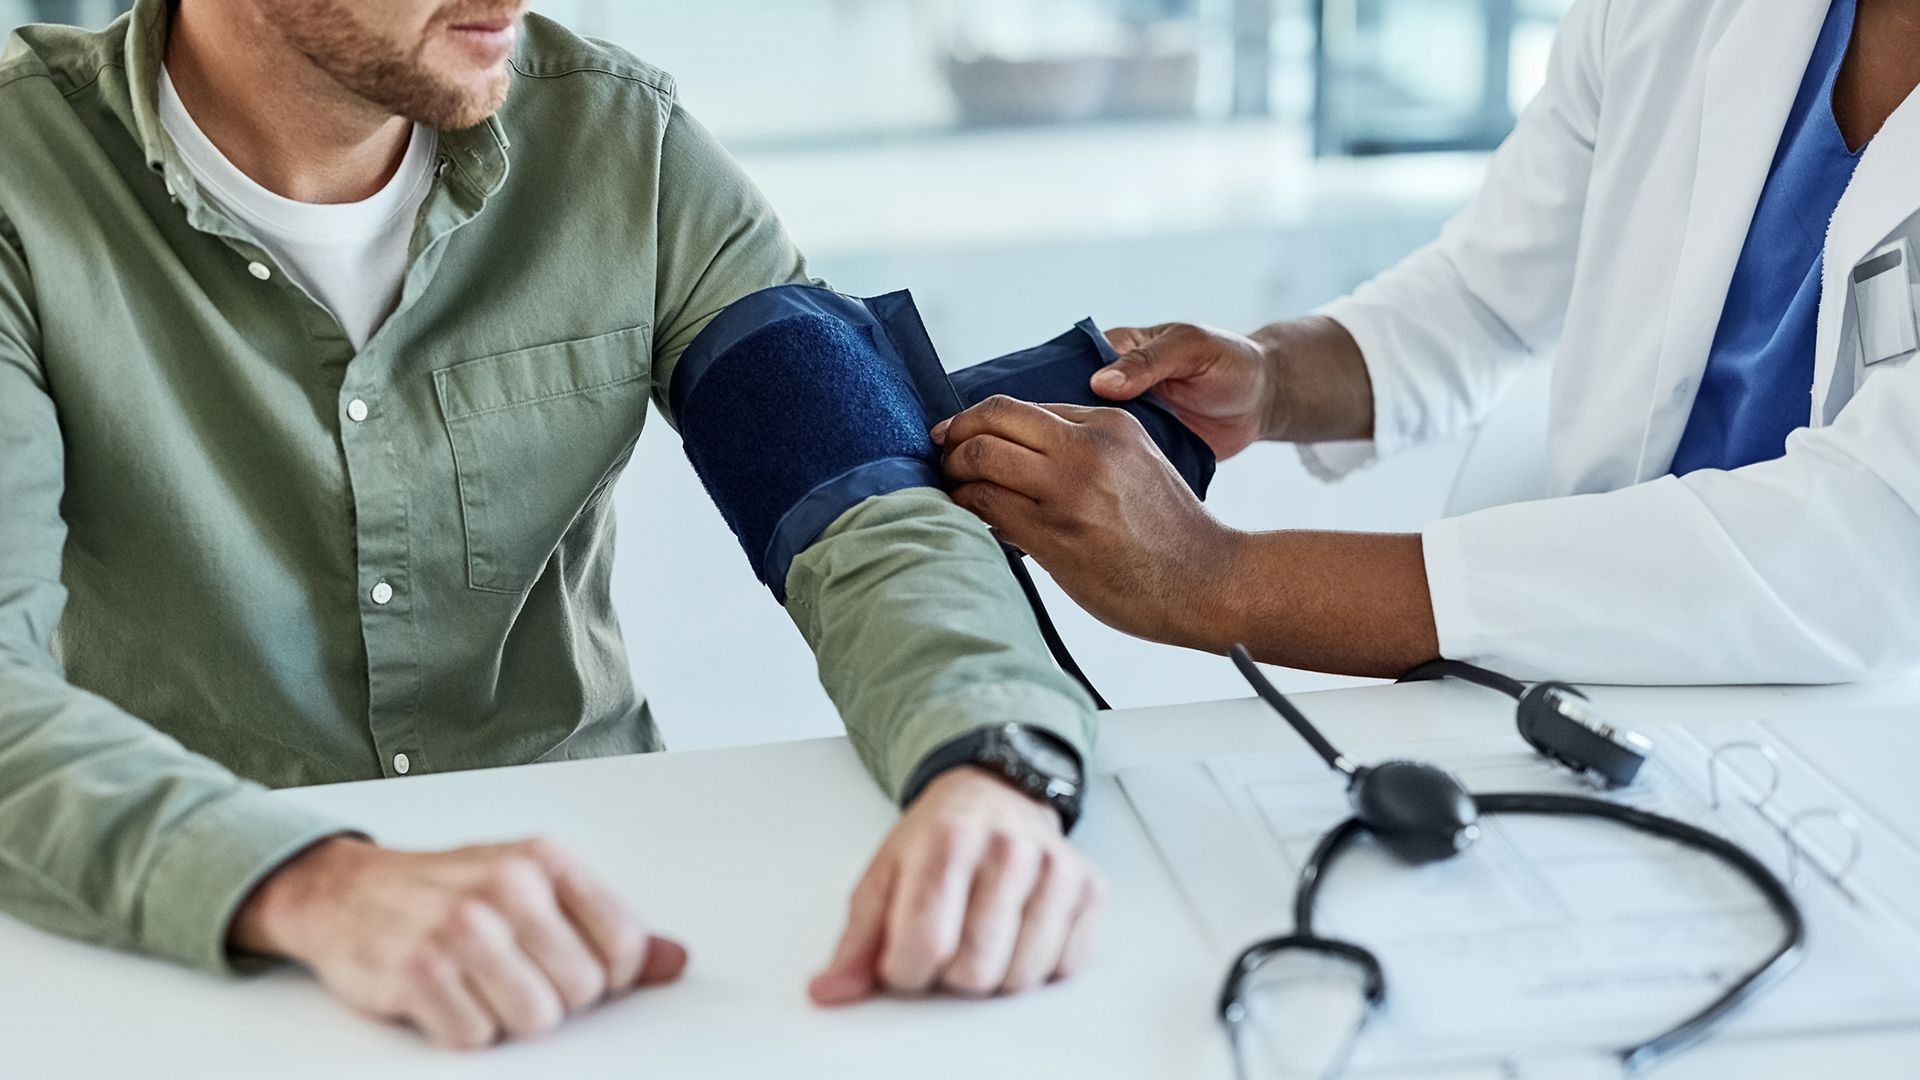 7 Ways to Manage High Blood Pressure